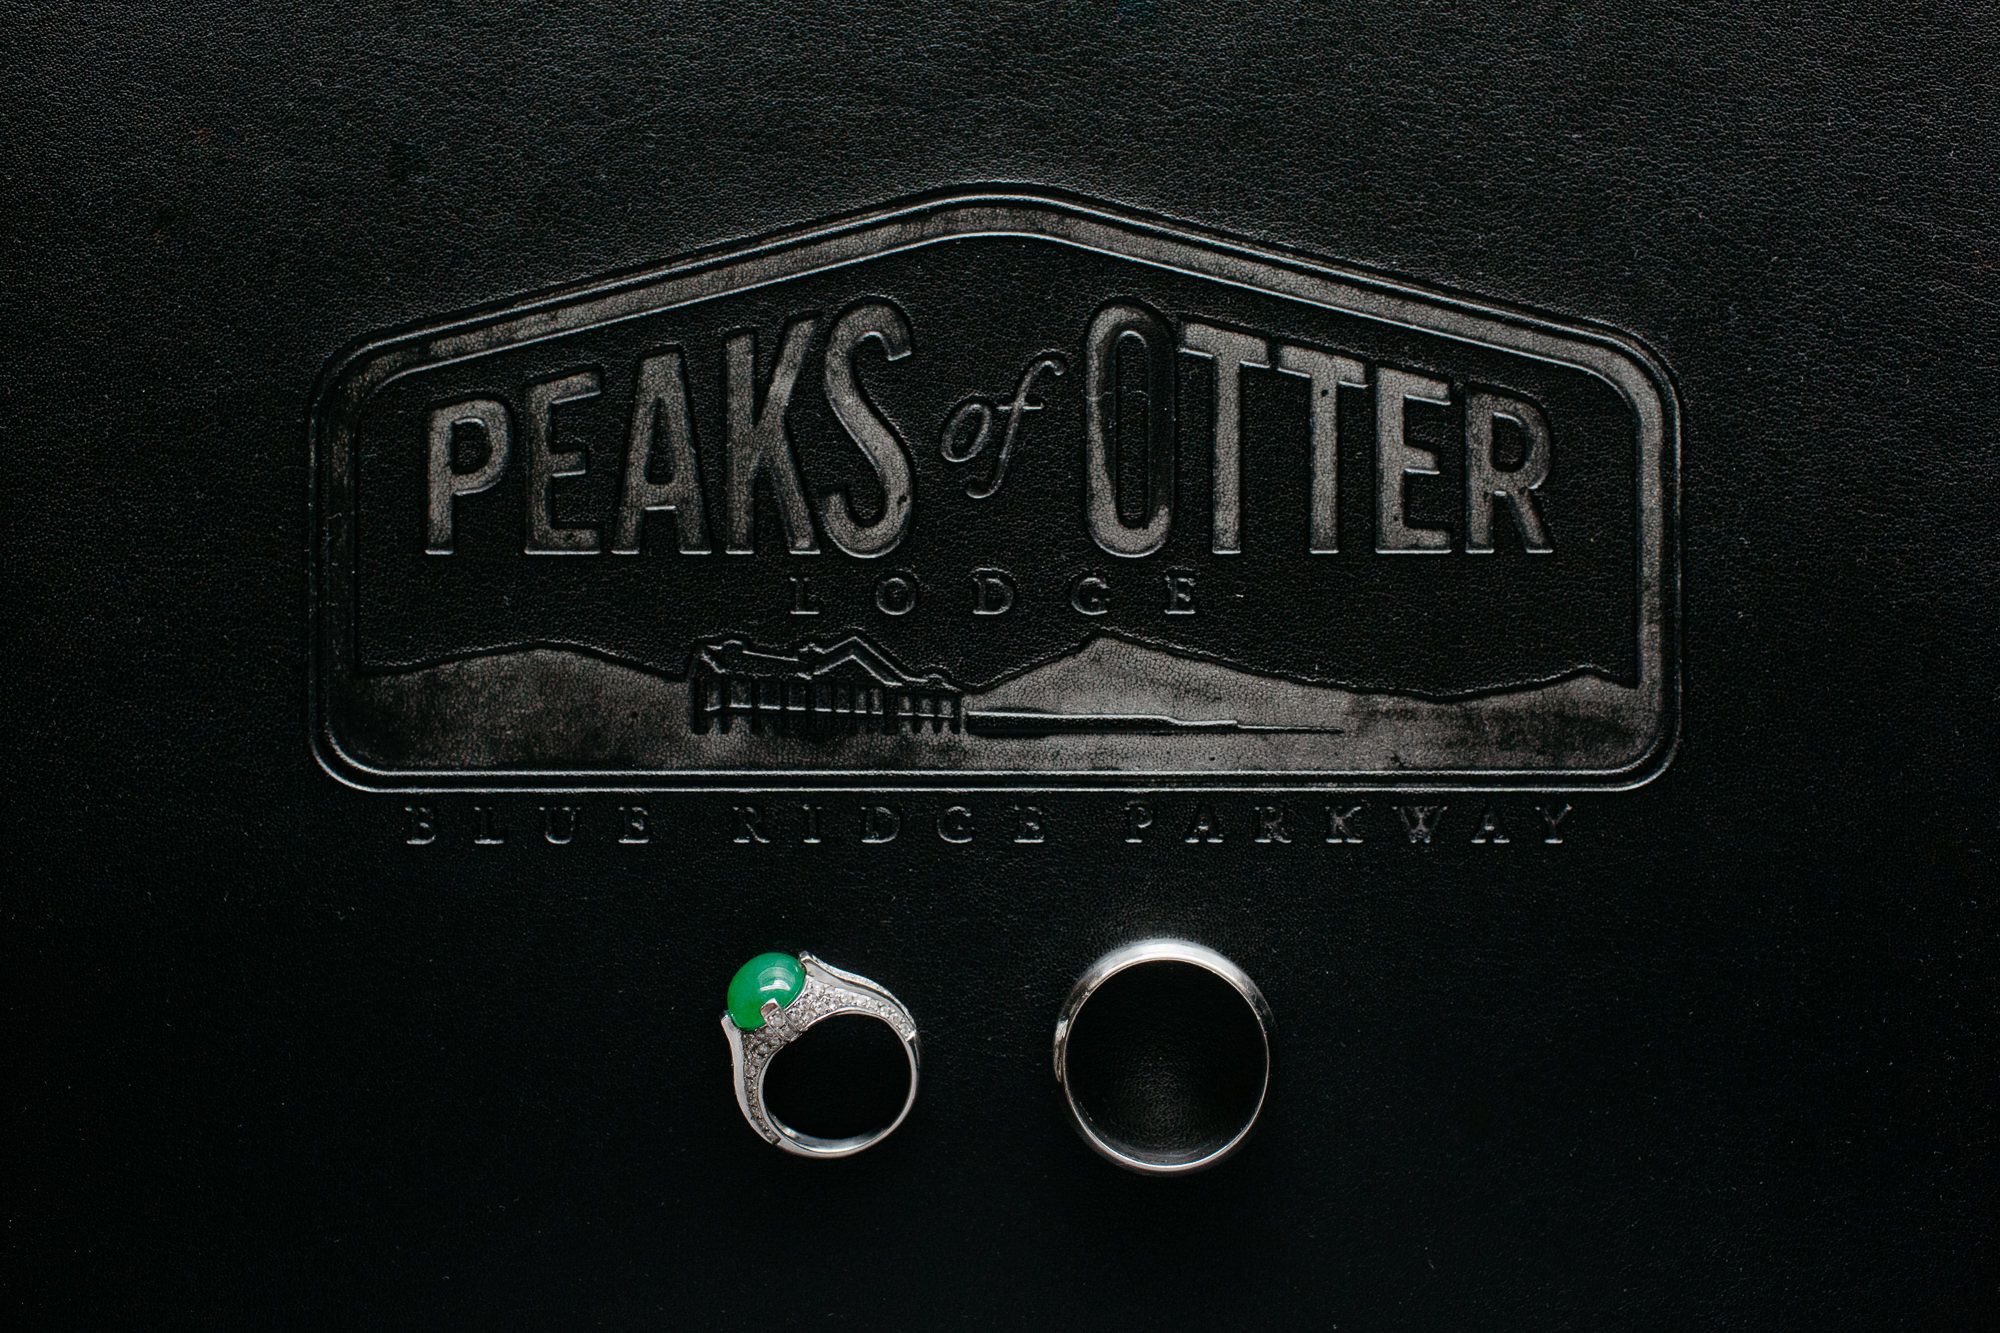 Peaks-of-Otter-Virginia-Of-Fate-and-Chaos-Elopement-Sharp-Top-3.jpg